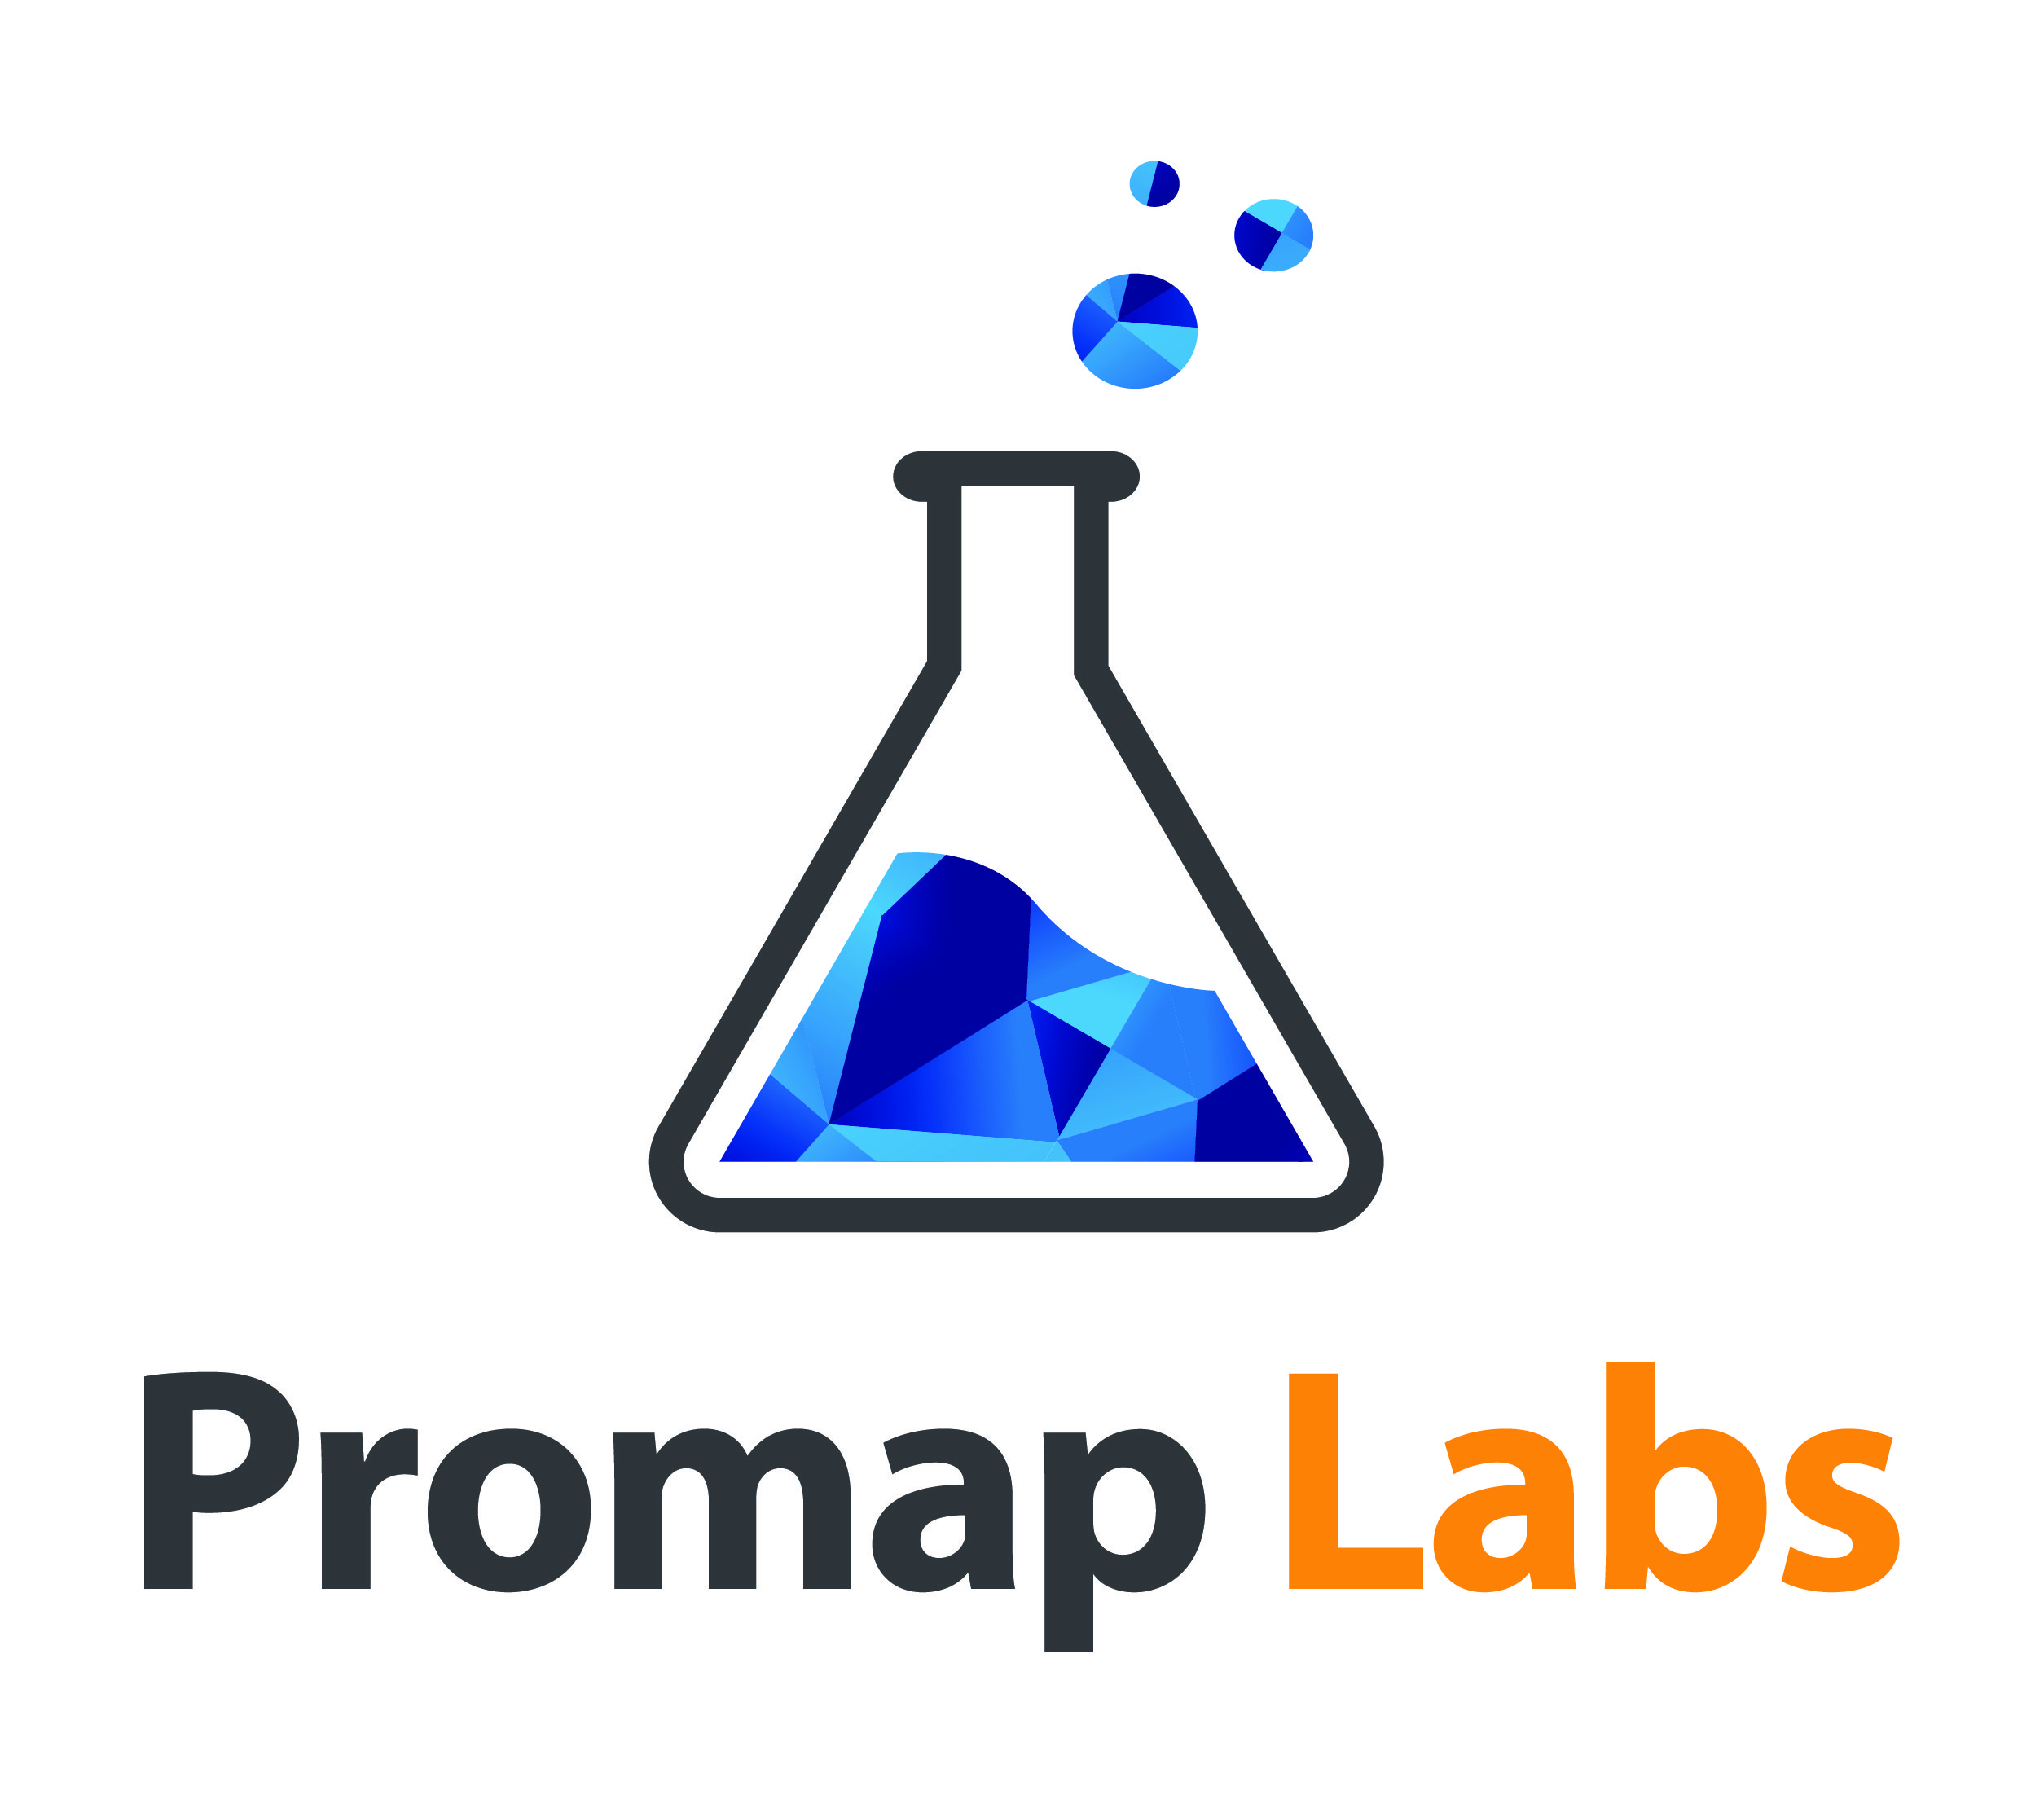 Landmark launches Promap Labs: providing early access to new and innovative digital mapping datasets and concepts